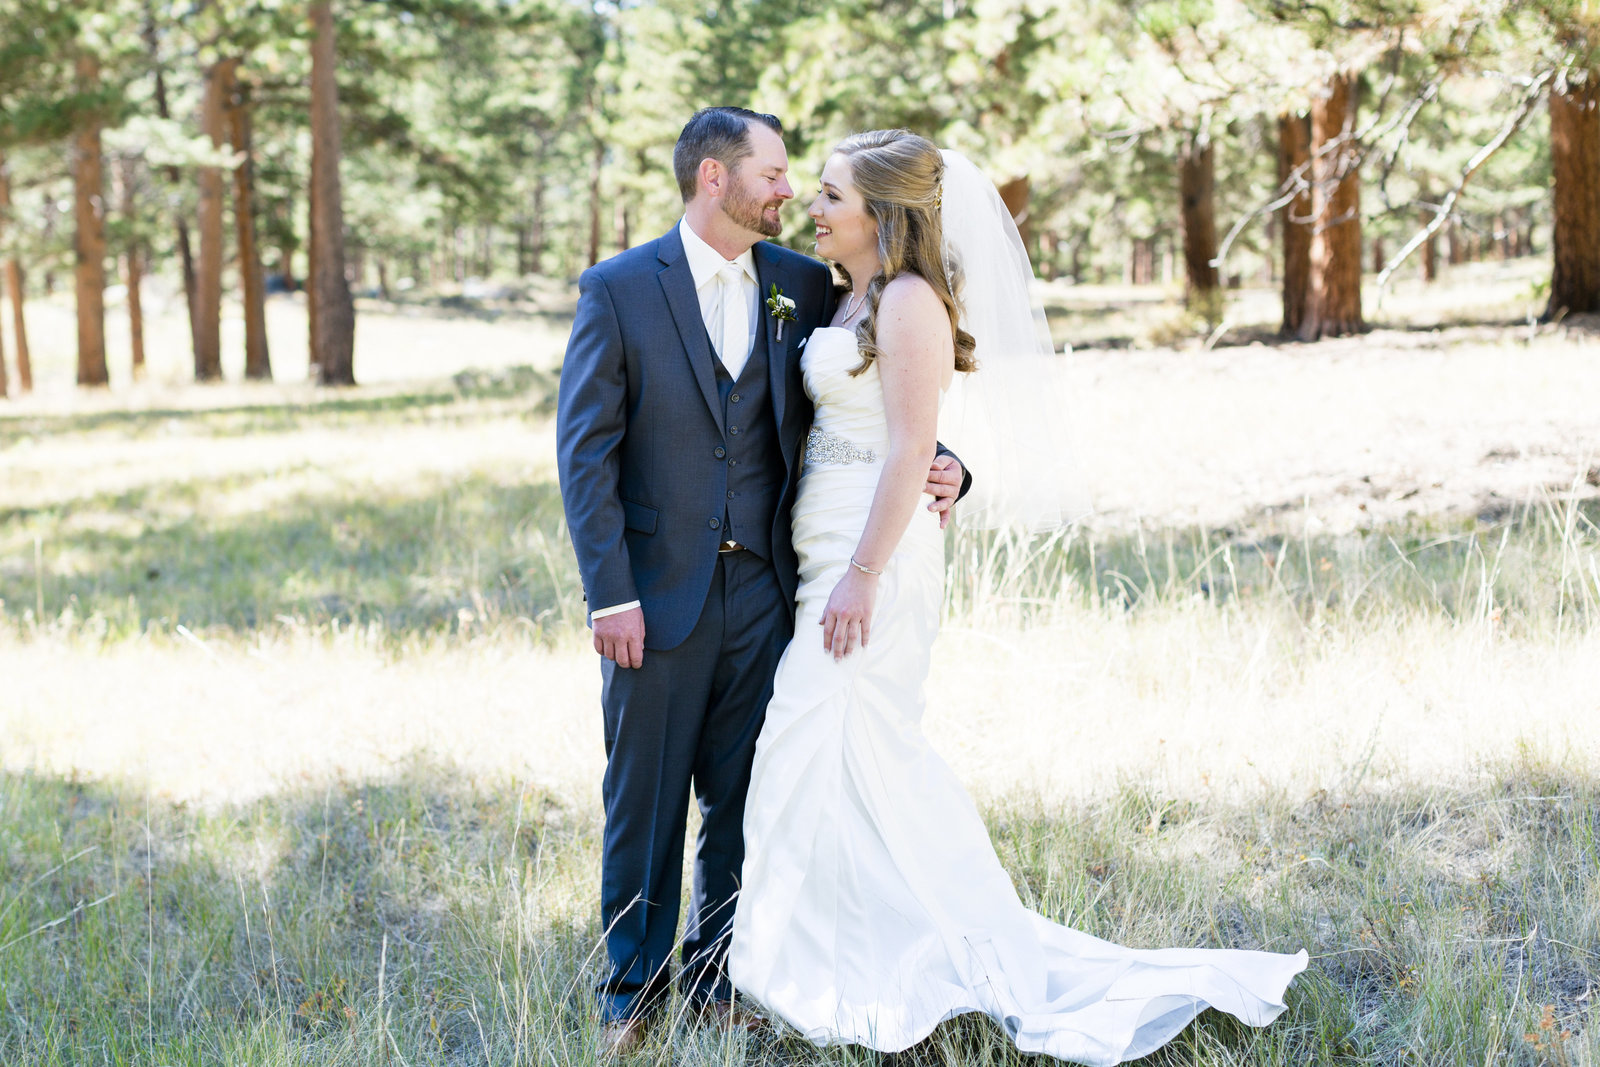 Jessi-Zach-Photography-Colorado-Mountain-Wedding-Photographer-Della-Terra-Mountain-Chateau_66